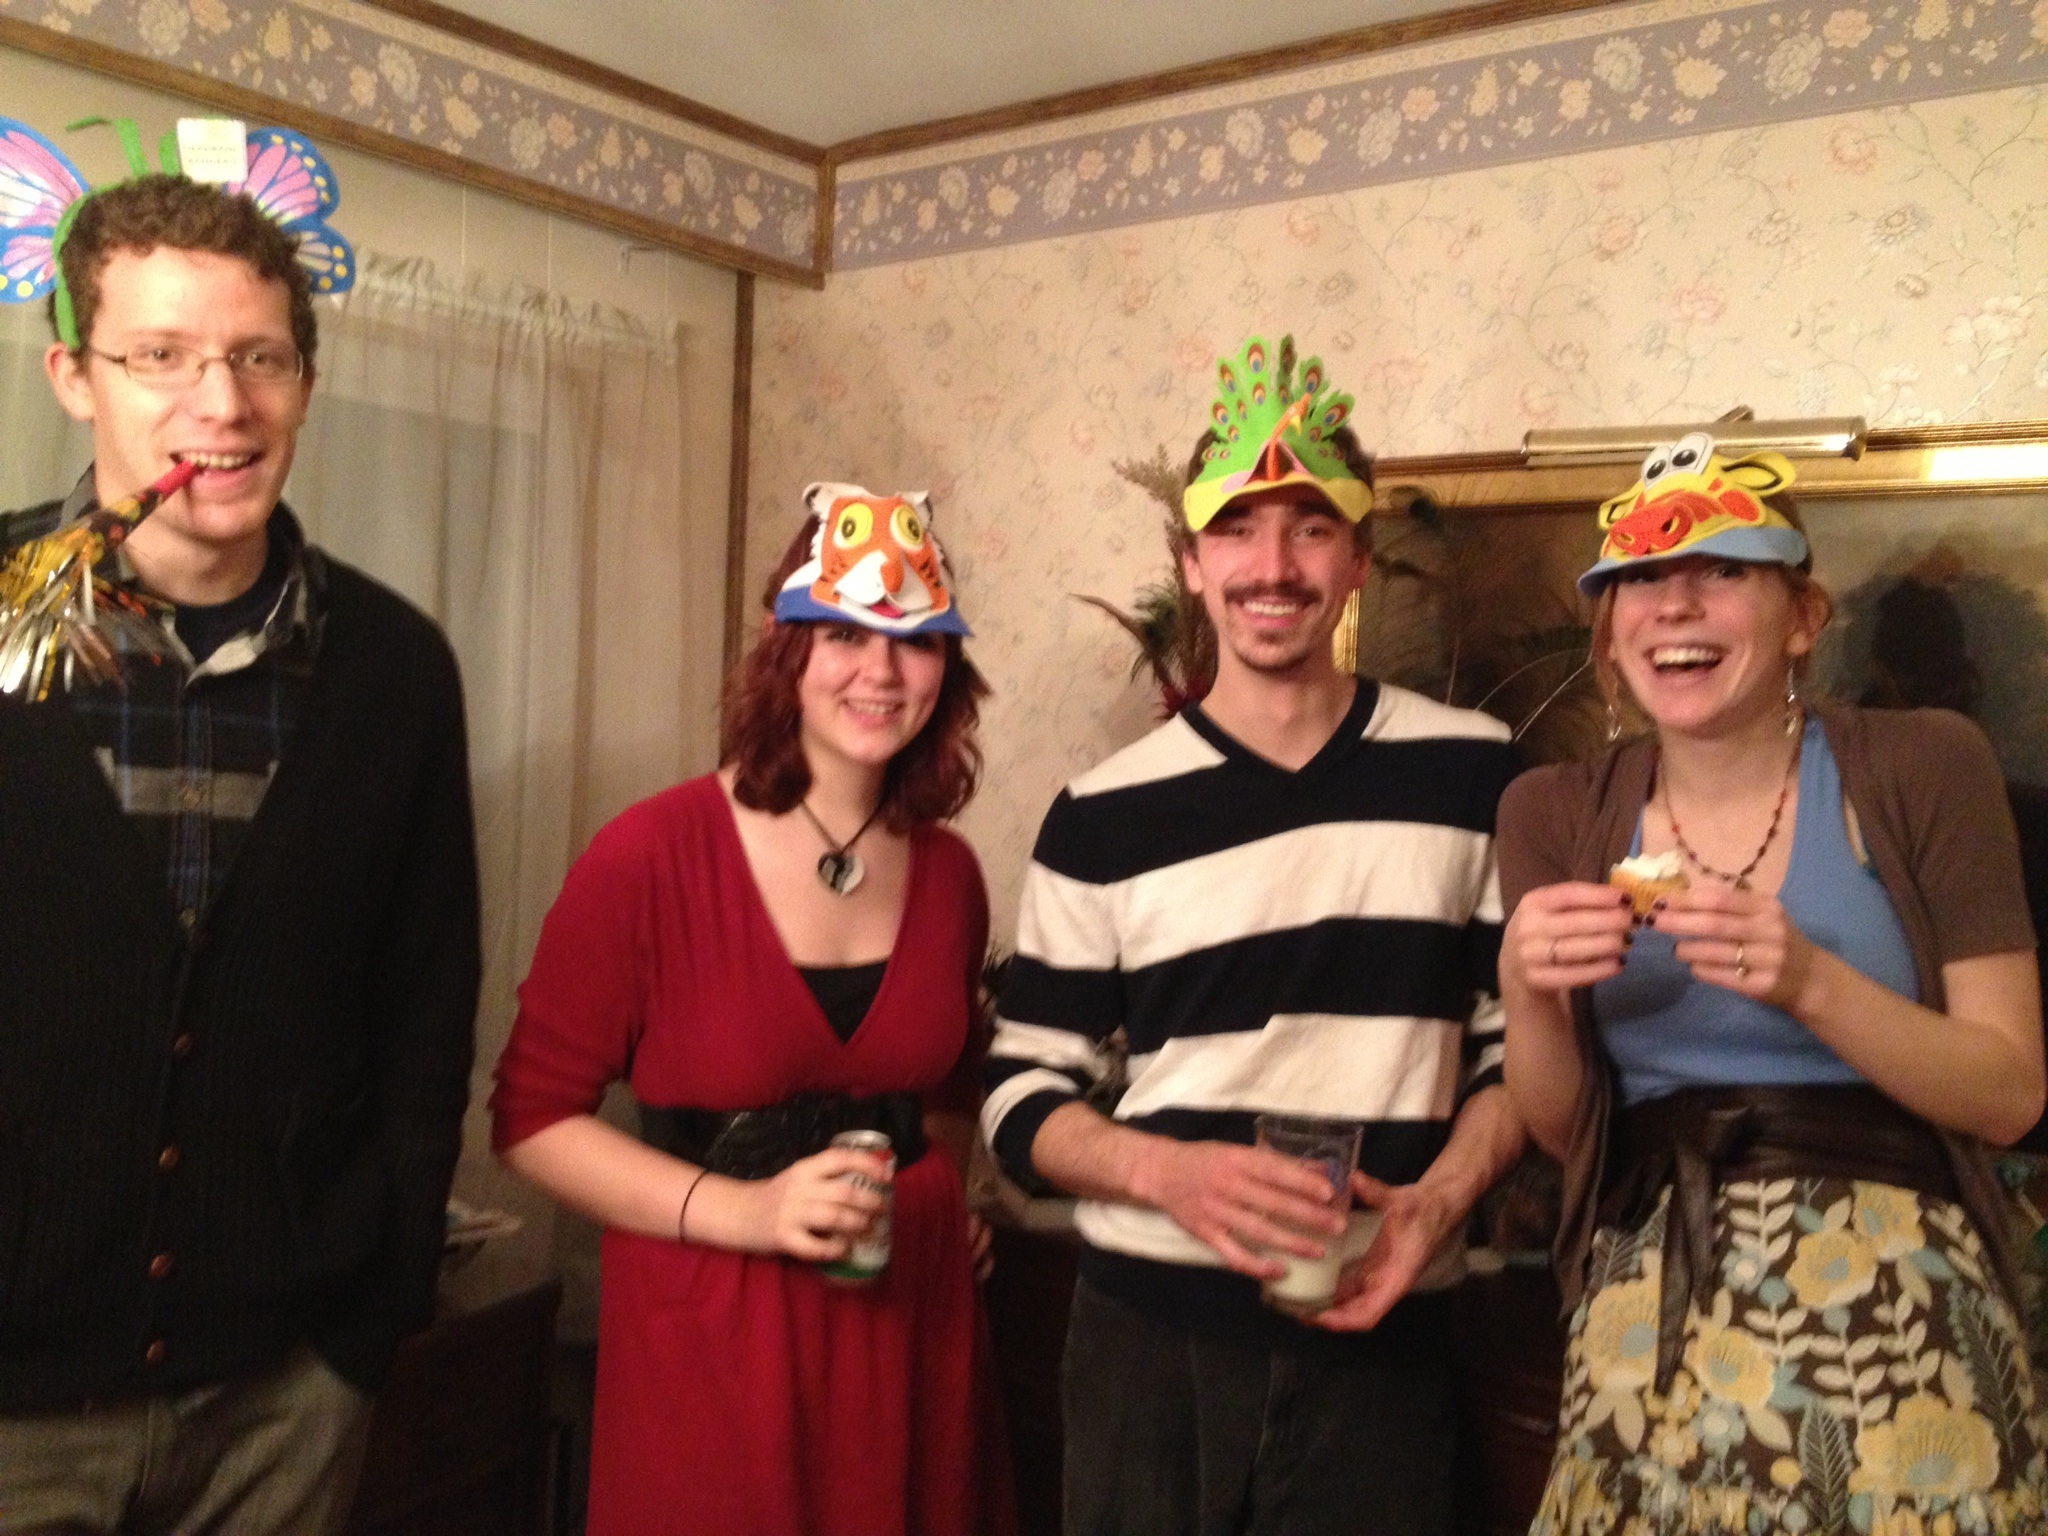 Yup. Those are animal hats. Because we party like adults.From the left: Dragon, John Hamm, Gumby, Me!